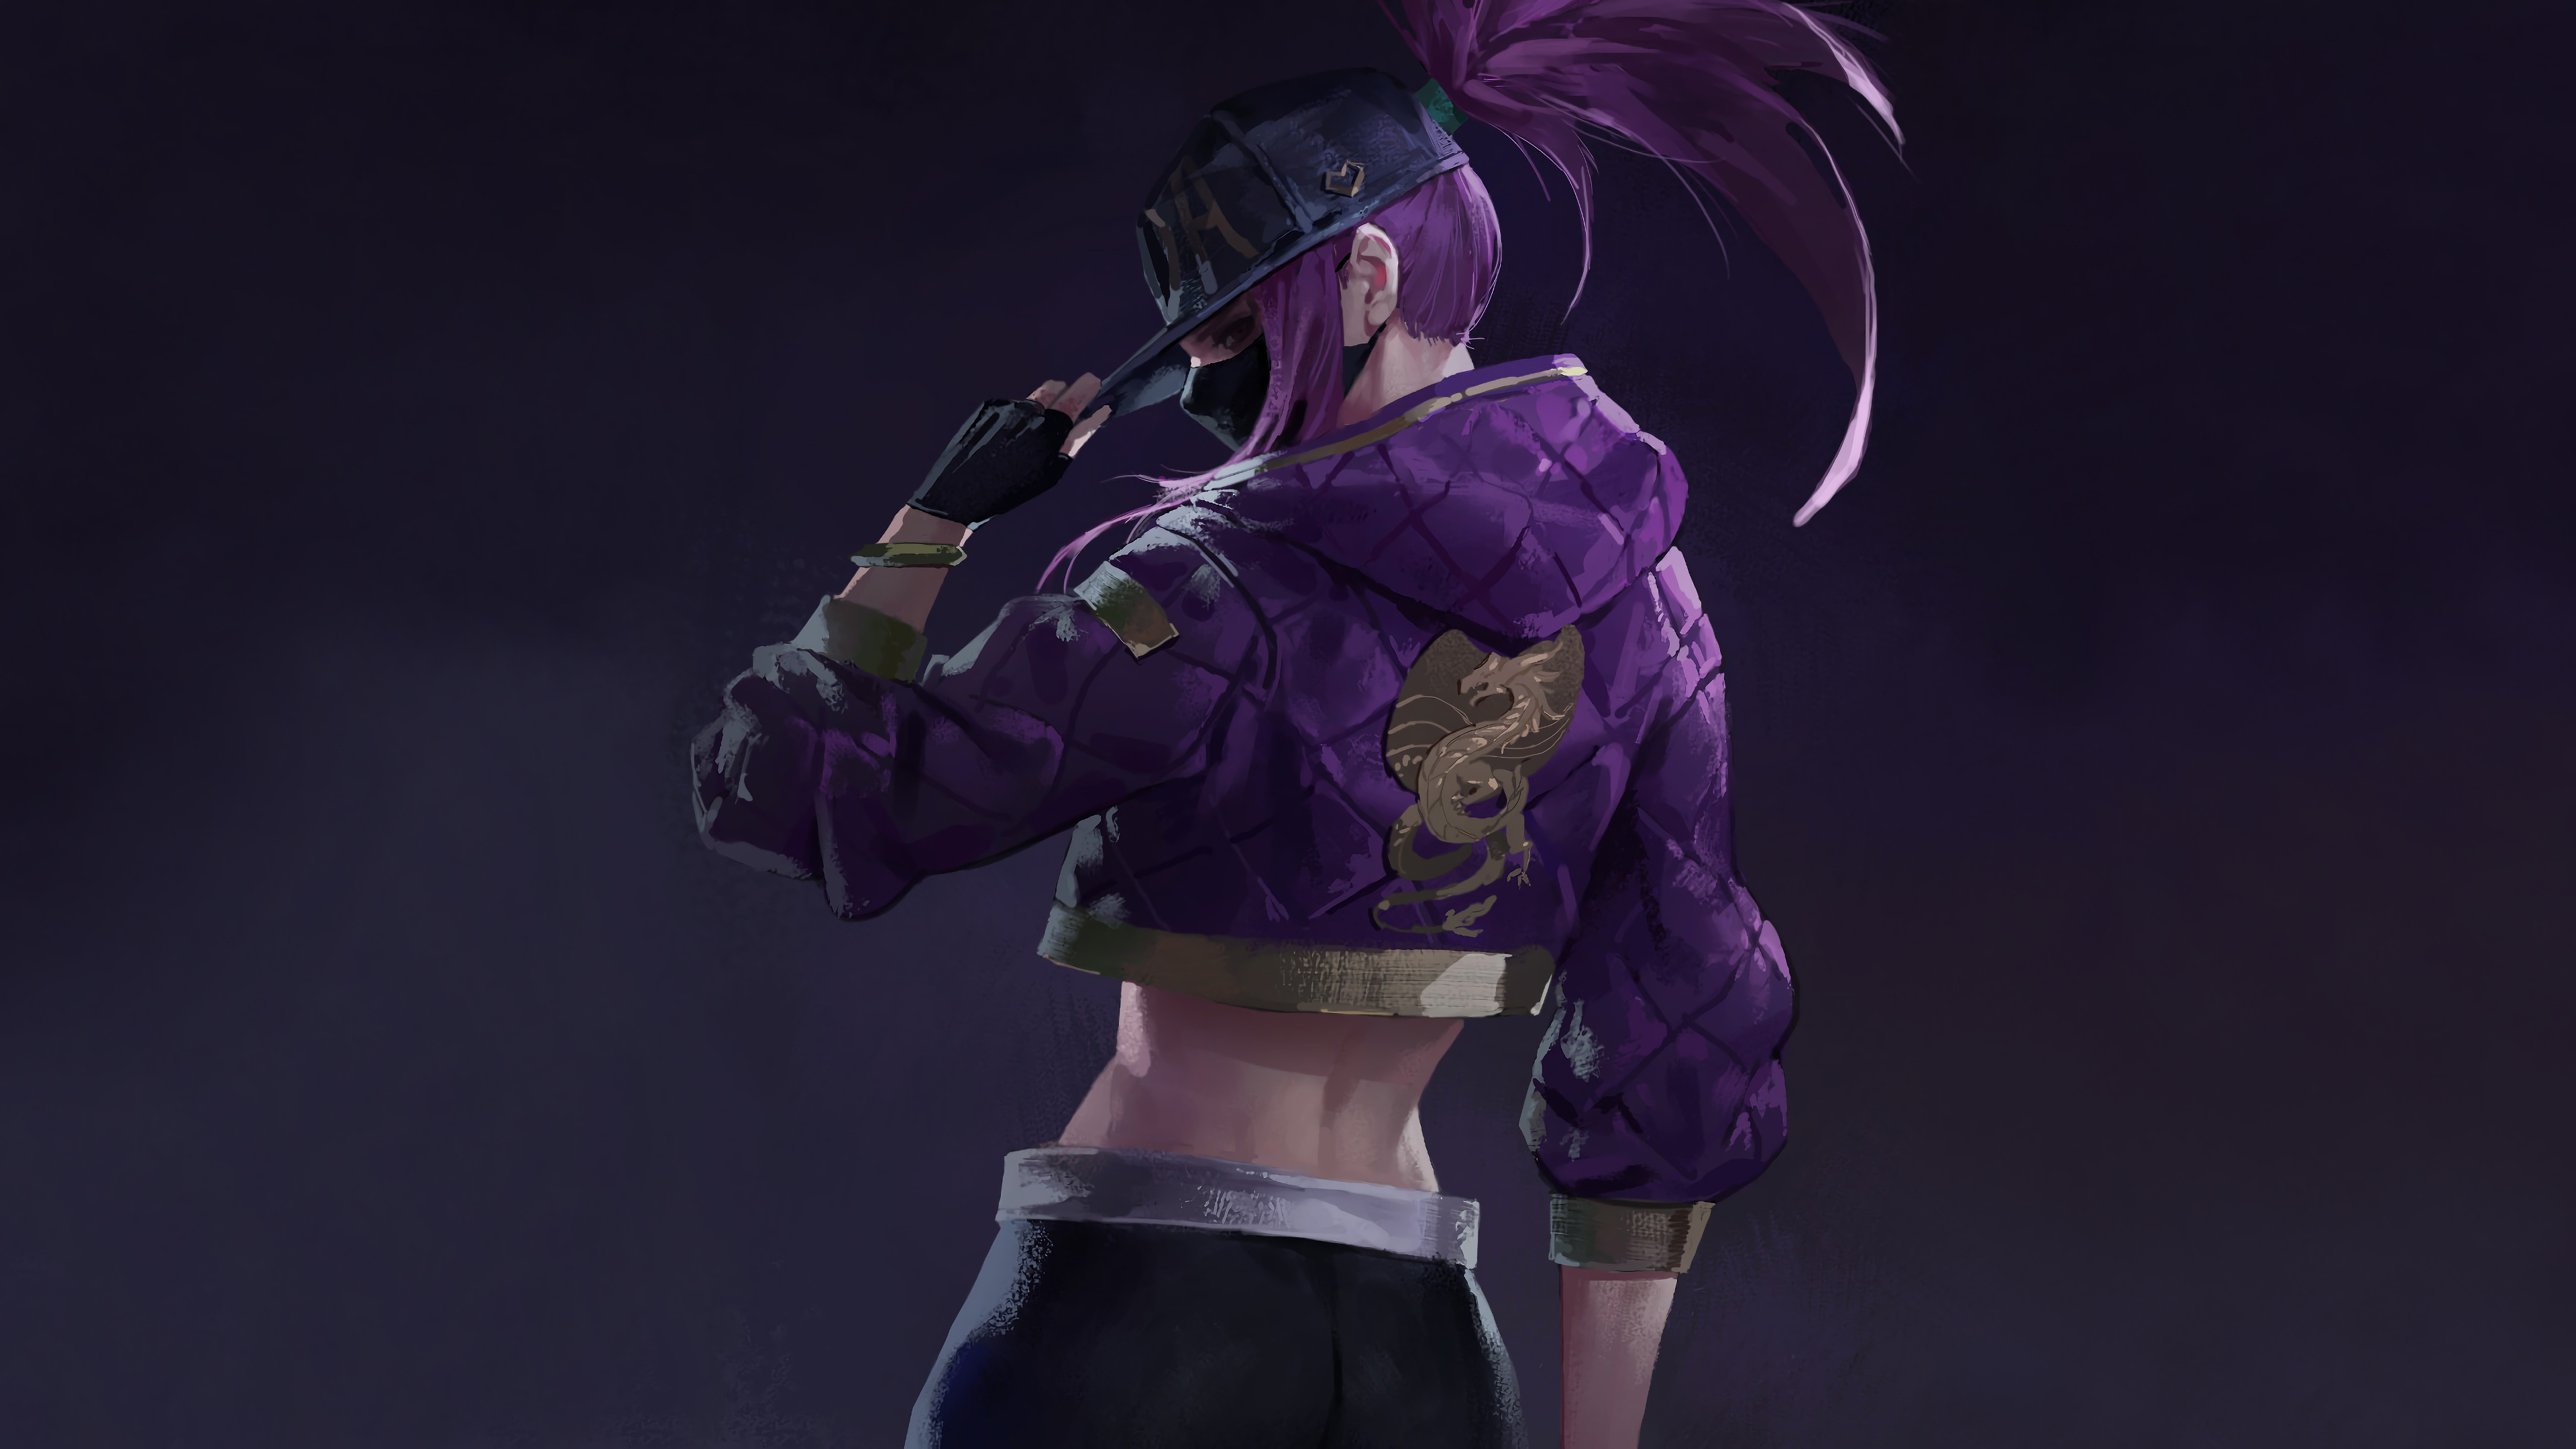 Kda Akali 4k Ultra Hd Wallpaper Hintergrund 3840x2160 Id